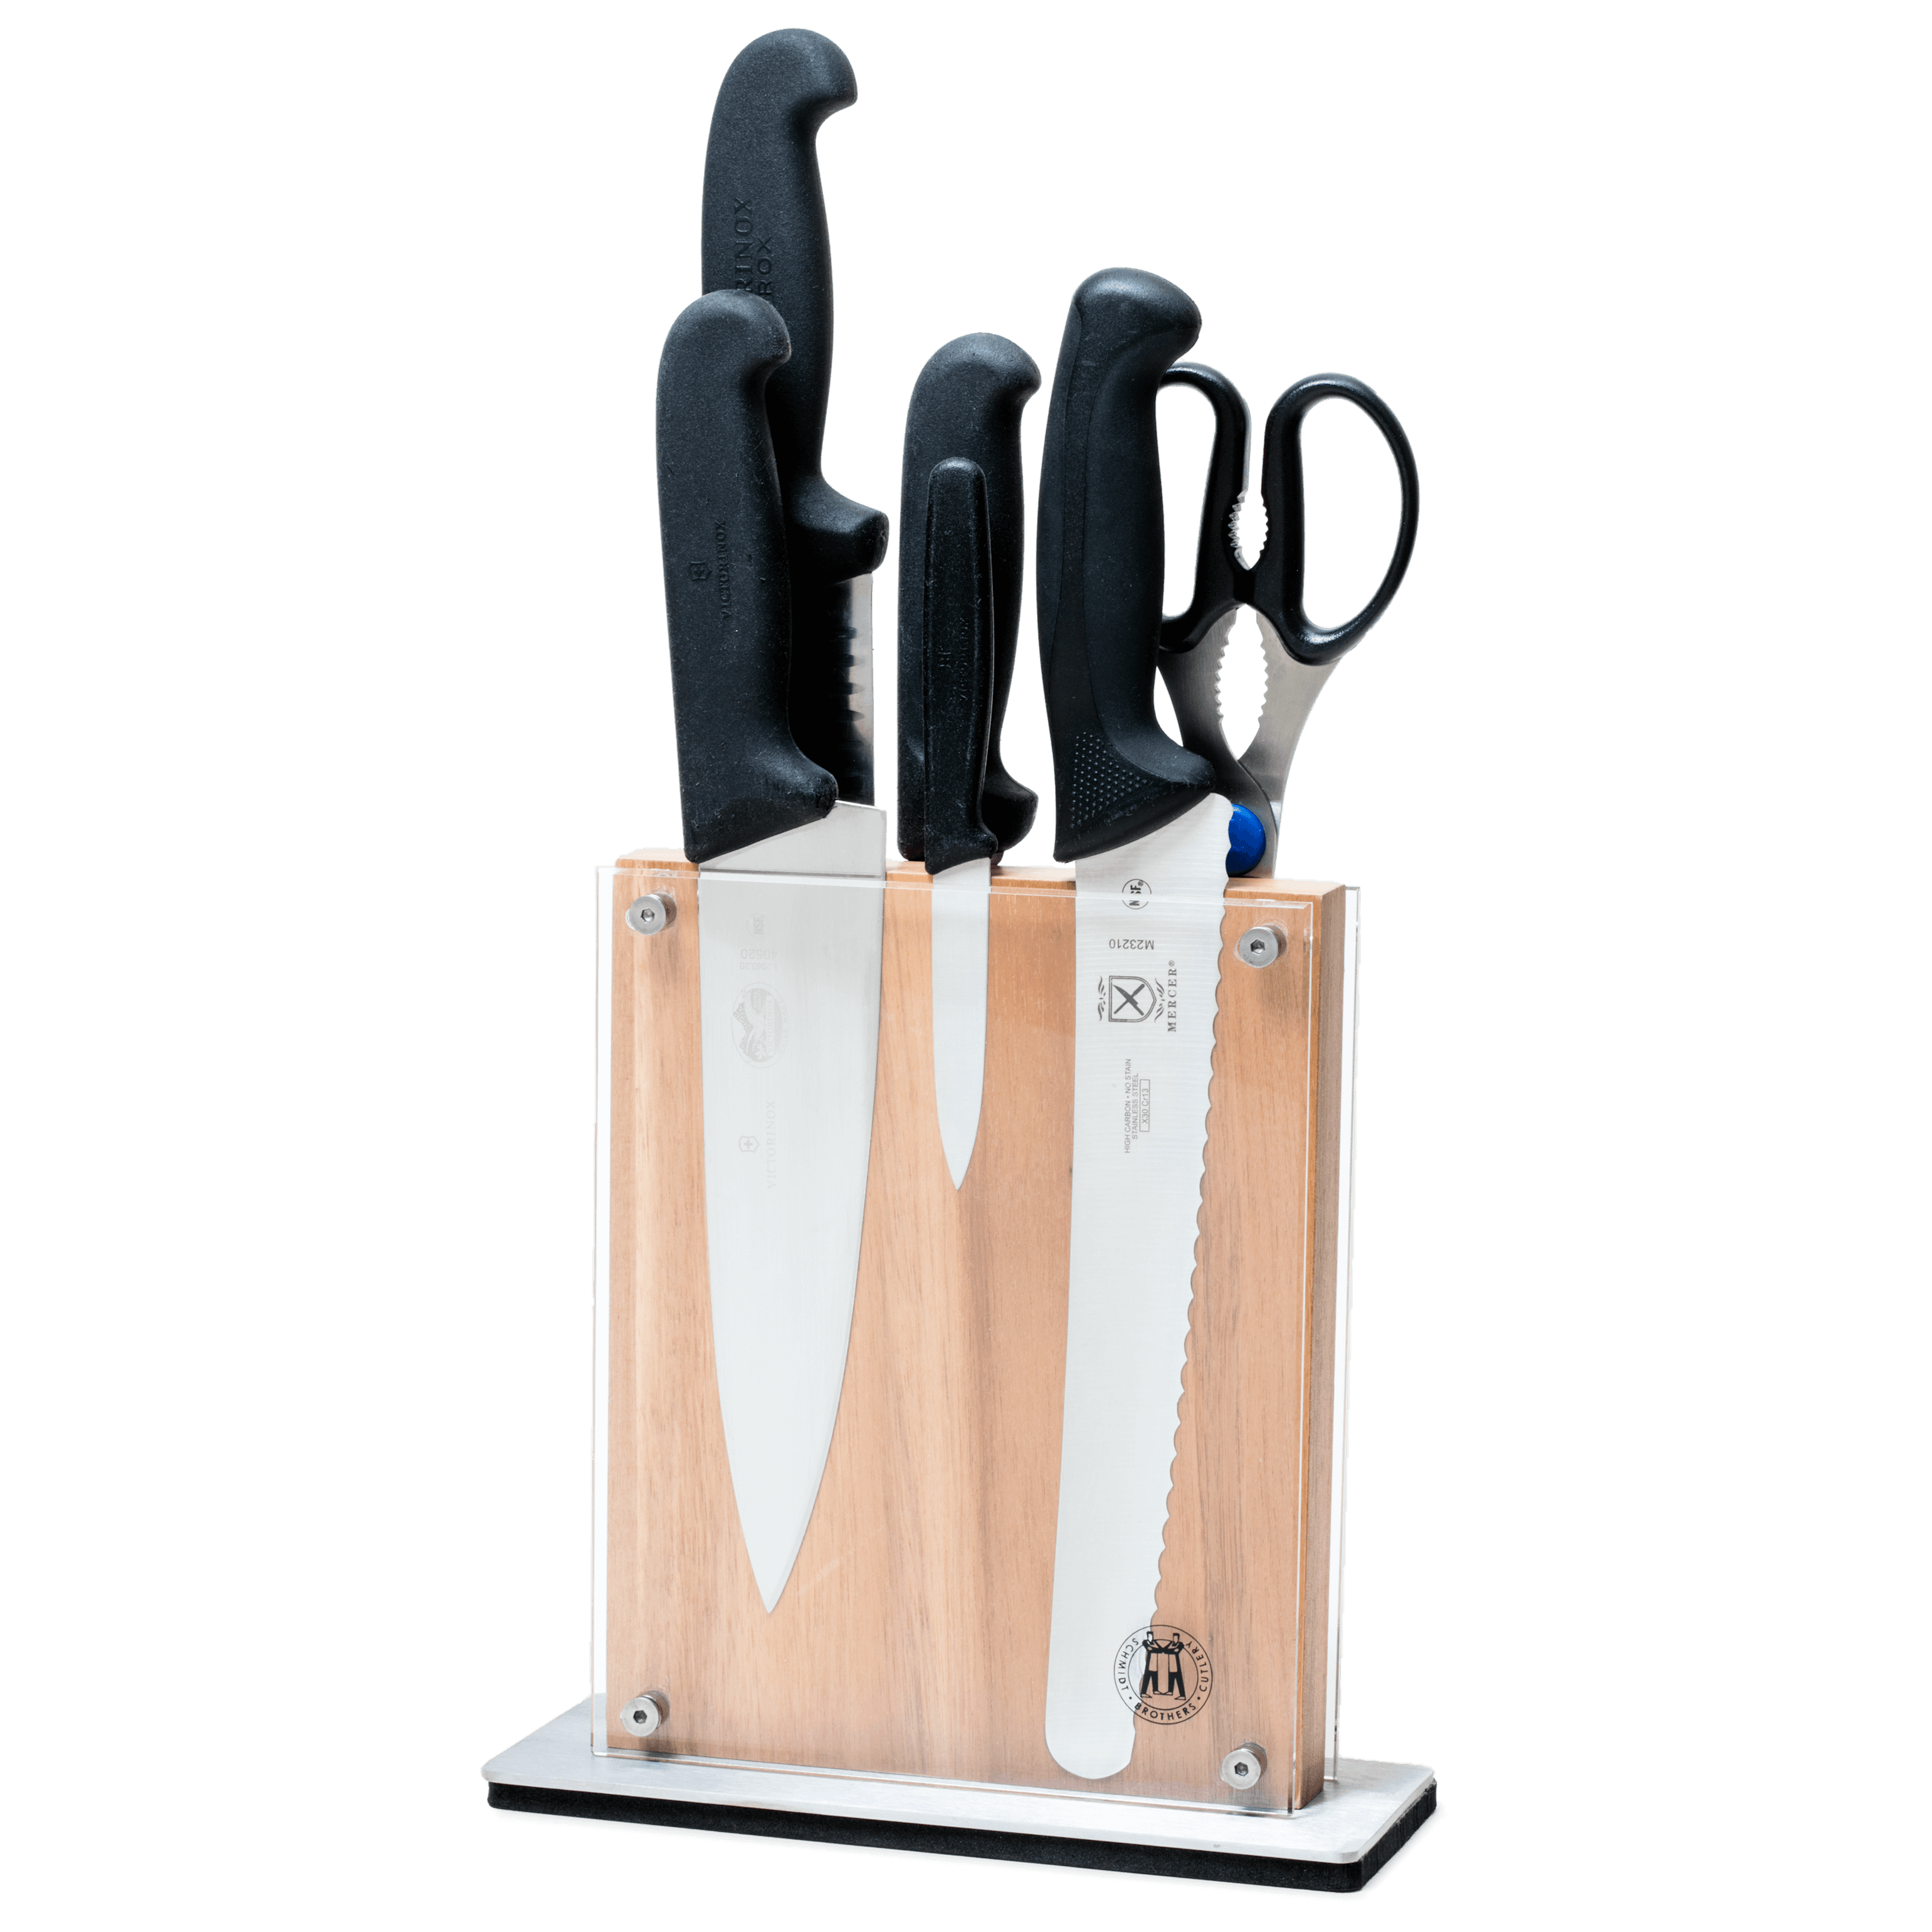 The Best Best Buy 224 La Carte Knife Set Cook S Illustrated